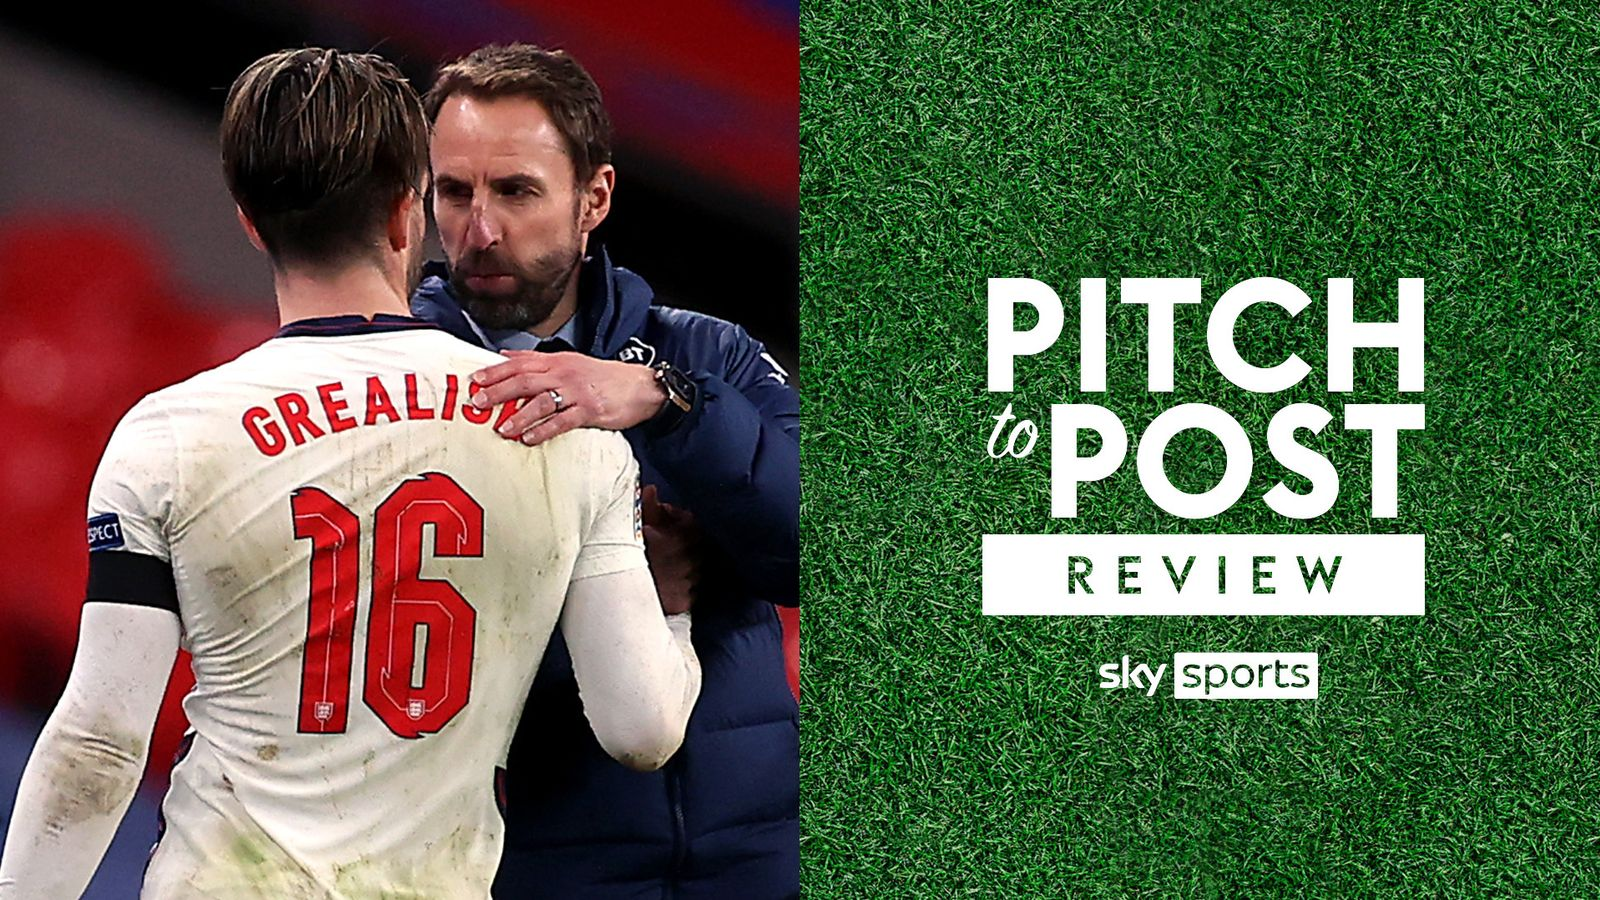 England squad winners losers: Who strengthened chance of Euro 2020 spot this weekend? Pitch to Post analysis